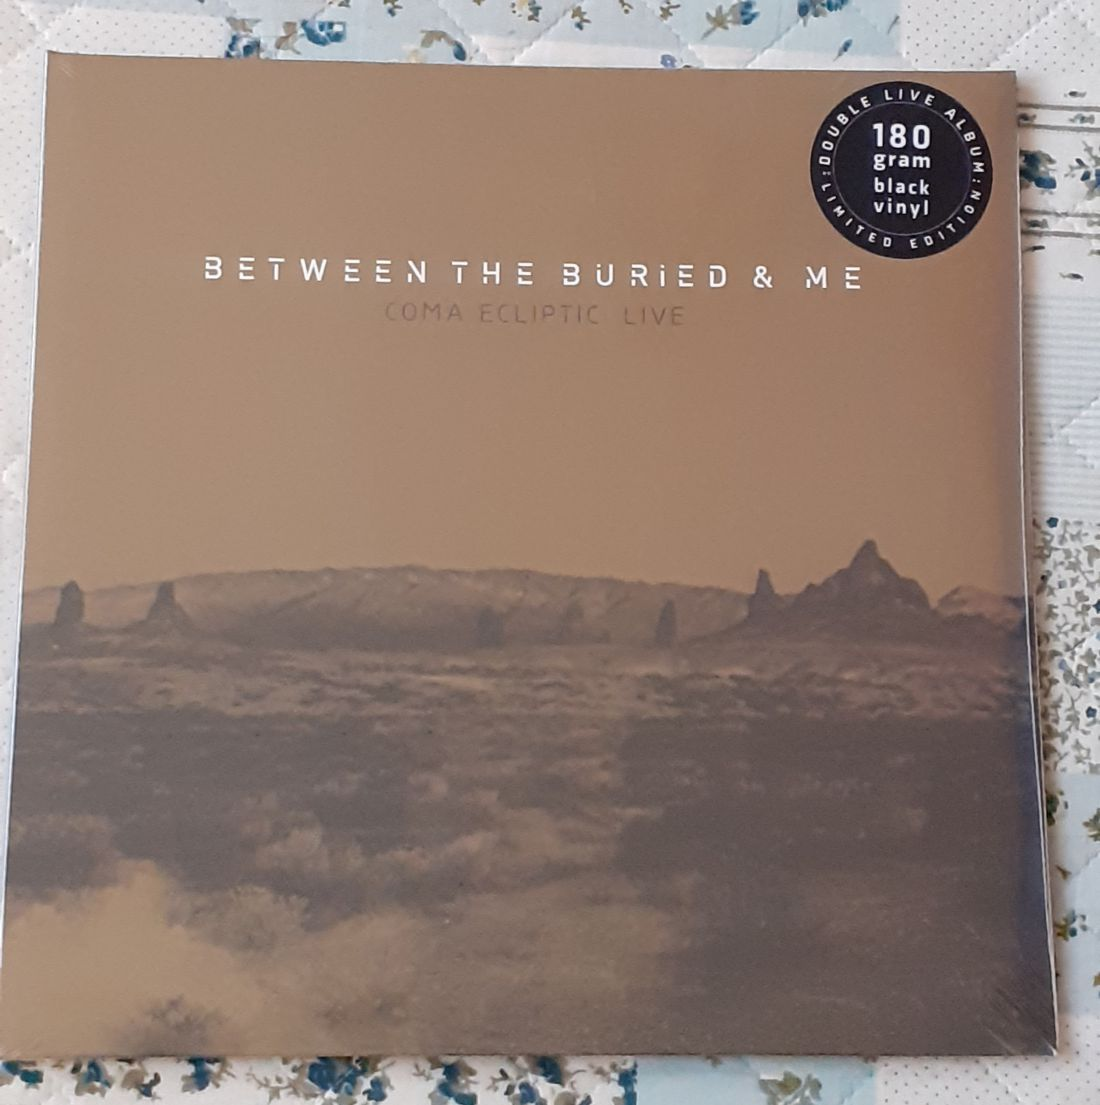 Between the buried and me: Coma ecliptic Live 2 LP